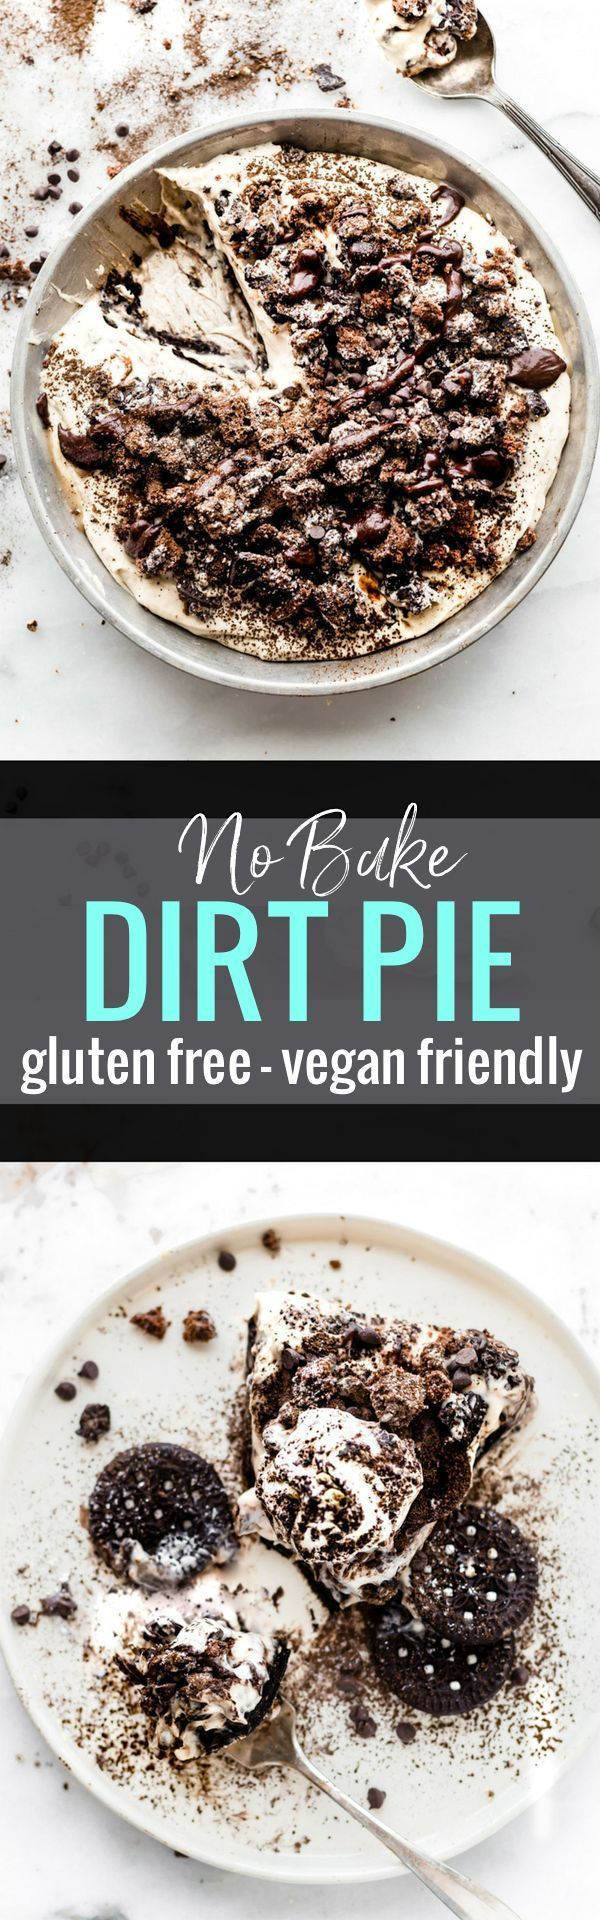 "A vegan friendly no bake dirt pie just got a healthier upgrade! This EASY no bake dessert made with GLUTEN FREE AND VEGAN FRIENDLY ""Oreo"" type cookies, coconut cream, dates, dark chocolate, and more. Plus it has the perfect 3 ingredient no bake dark chocolate crust to go with it. Easy and Tasty! http://www.cottercrunch.com"